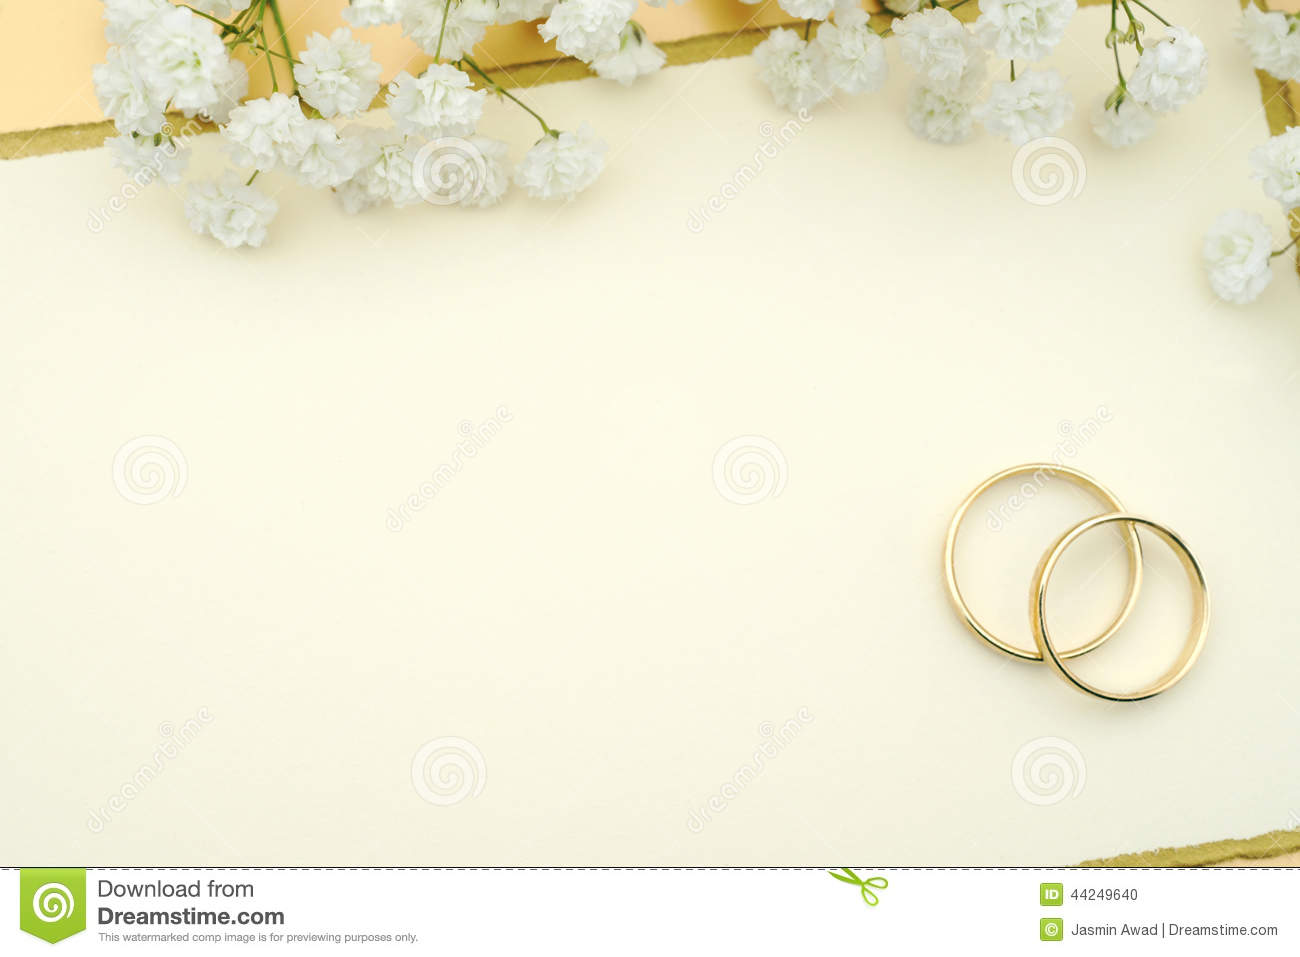 Wedding invitation stock photo Image of ring invitation 44249640 – Blank Wedding Invitation Card Stock